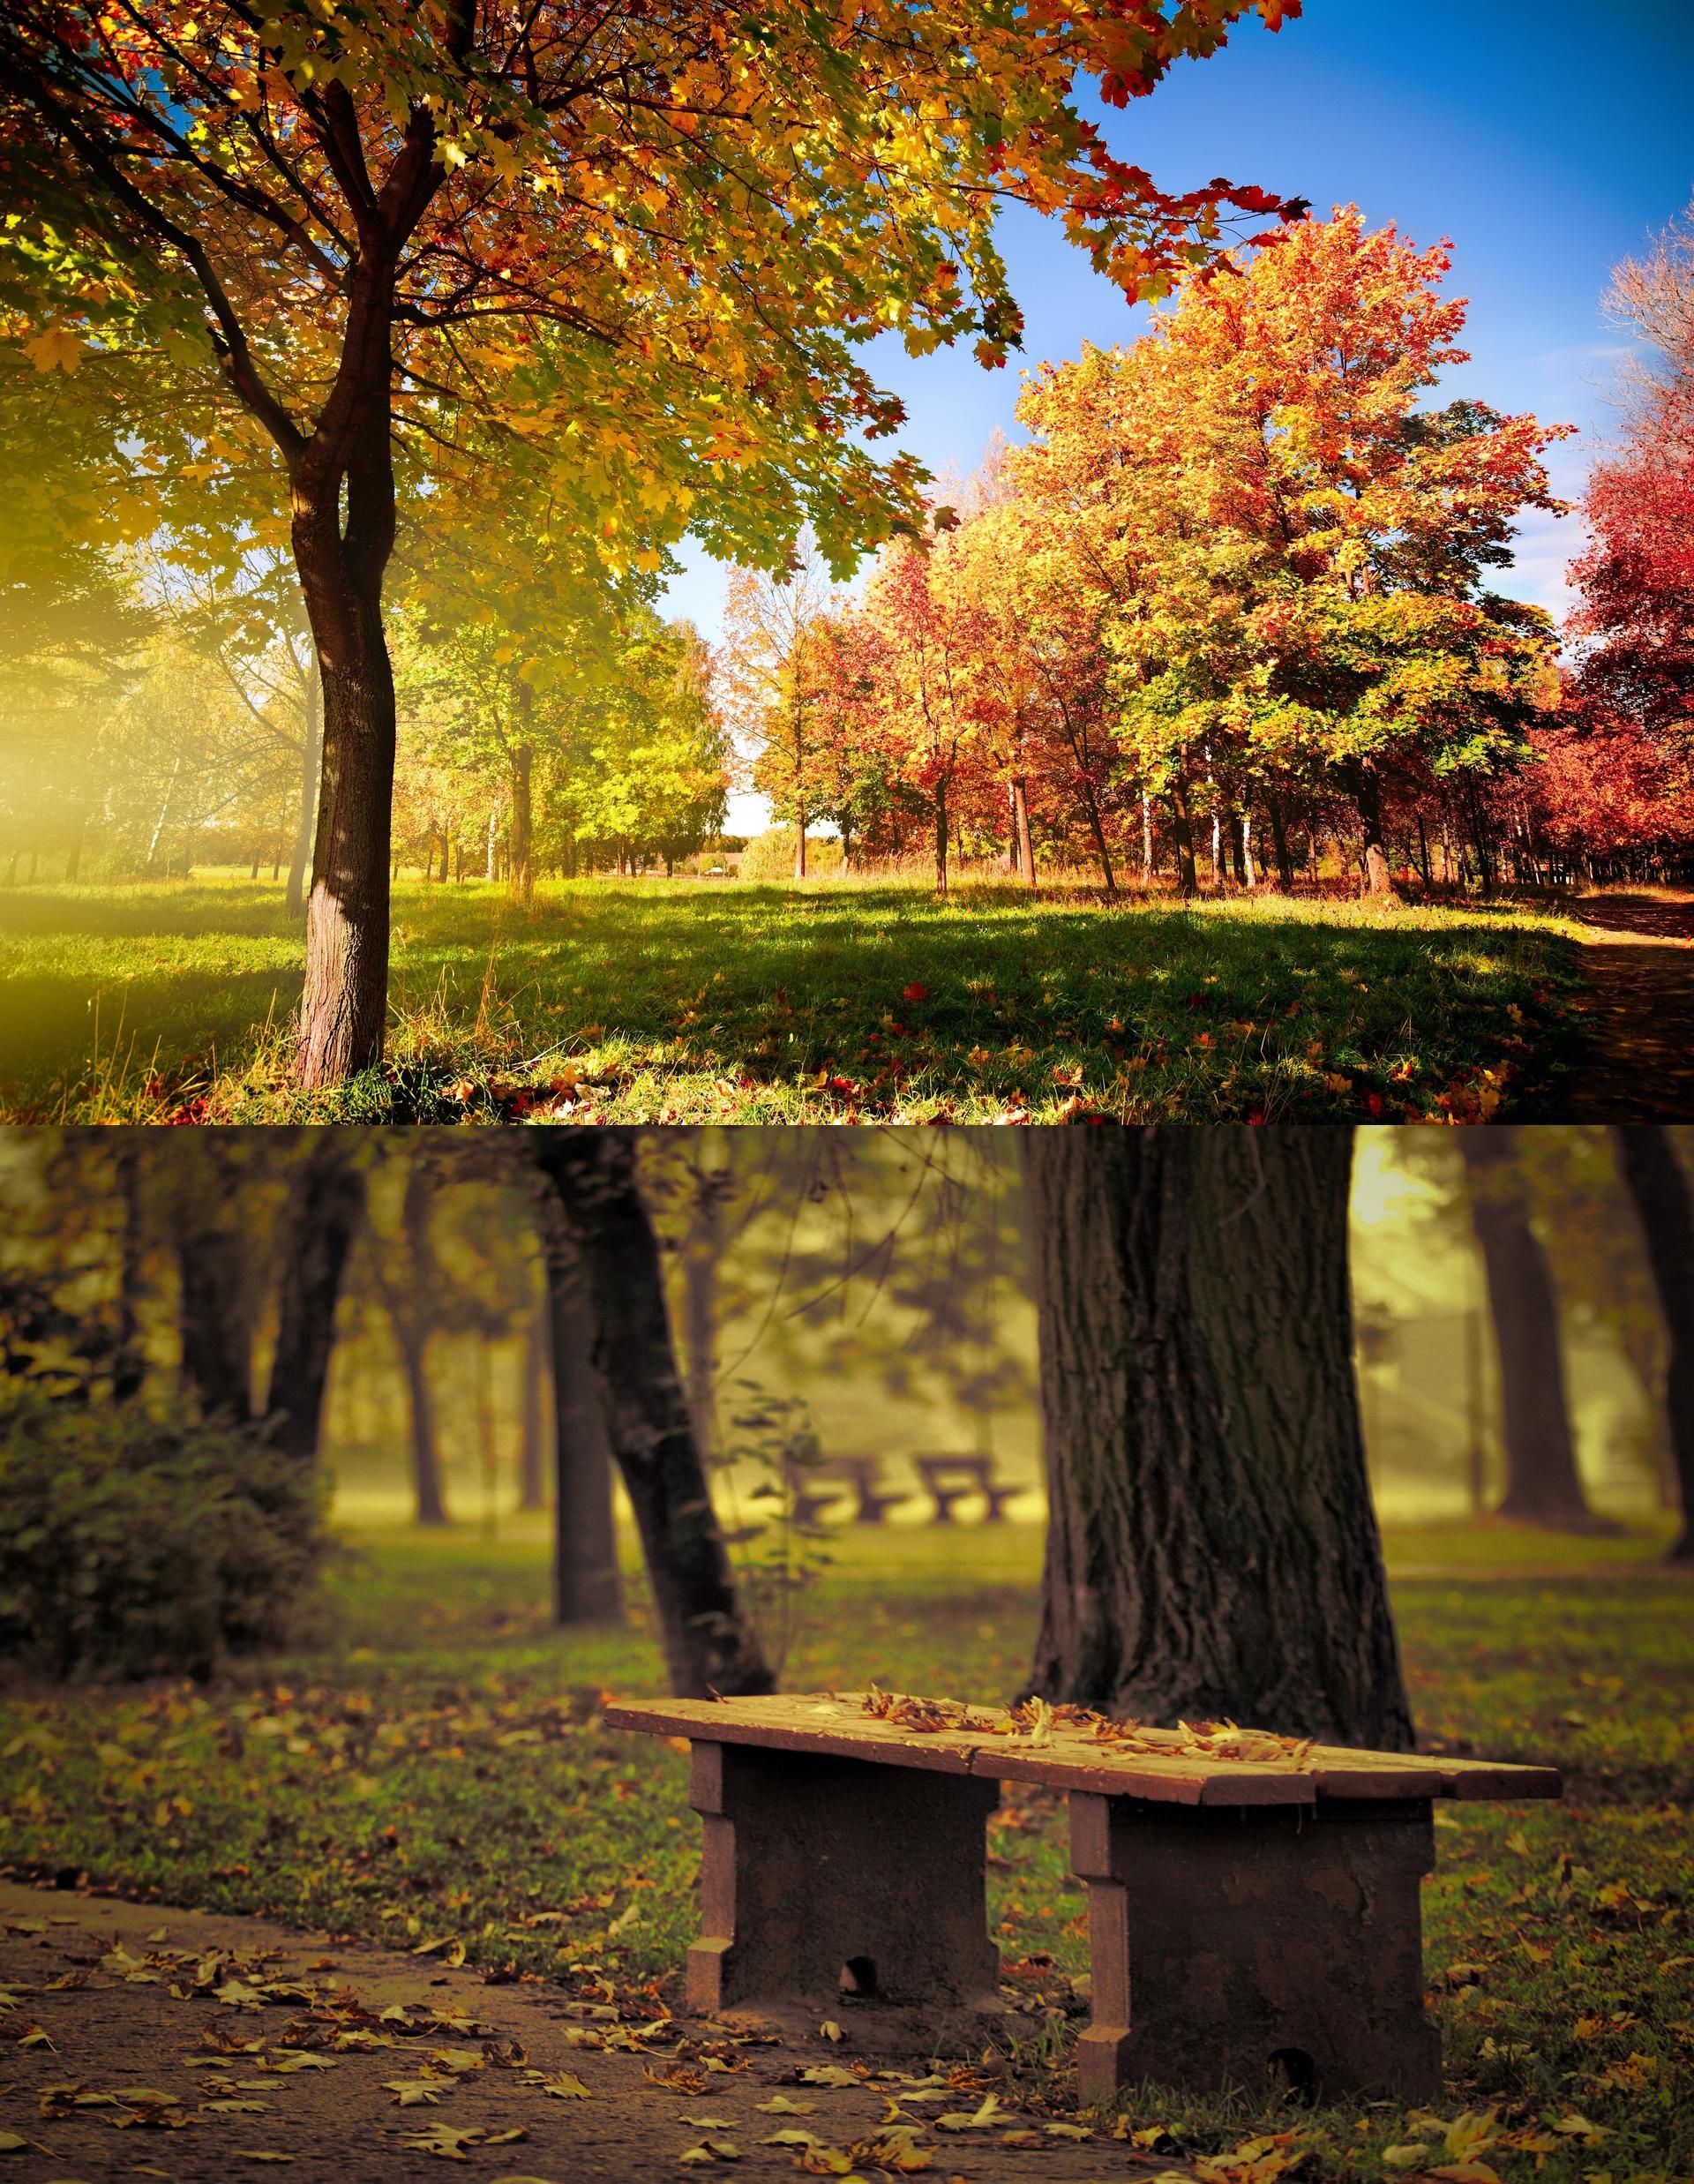 Bench, park, fallen leaves, autumn trees, the effect of the focus, blurring